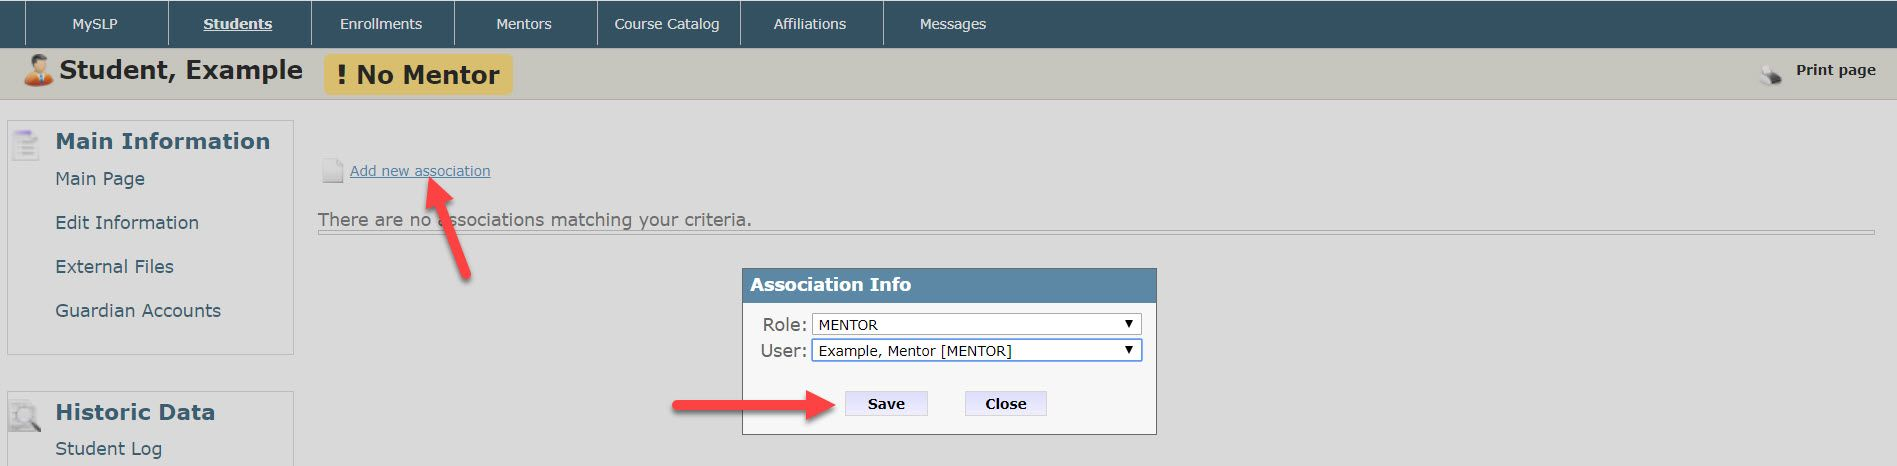 The Associate to Mentor page shows an arrow pointing to the Add new association link on the top left of the page. The Association Info pop-up dialog box is displayed as a result of tapping the link. The Role and User drop-down fields must be used to select the mentor that should be assigned. An arrow then points to the Save button at the bottom of the pop-up.